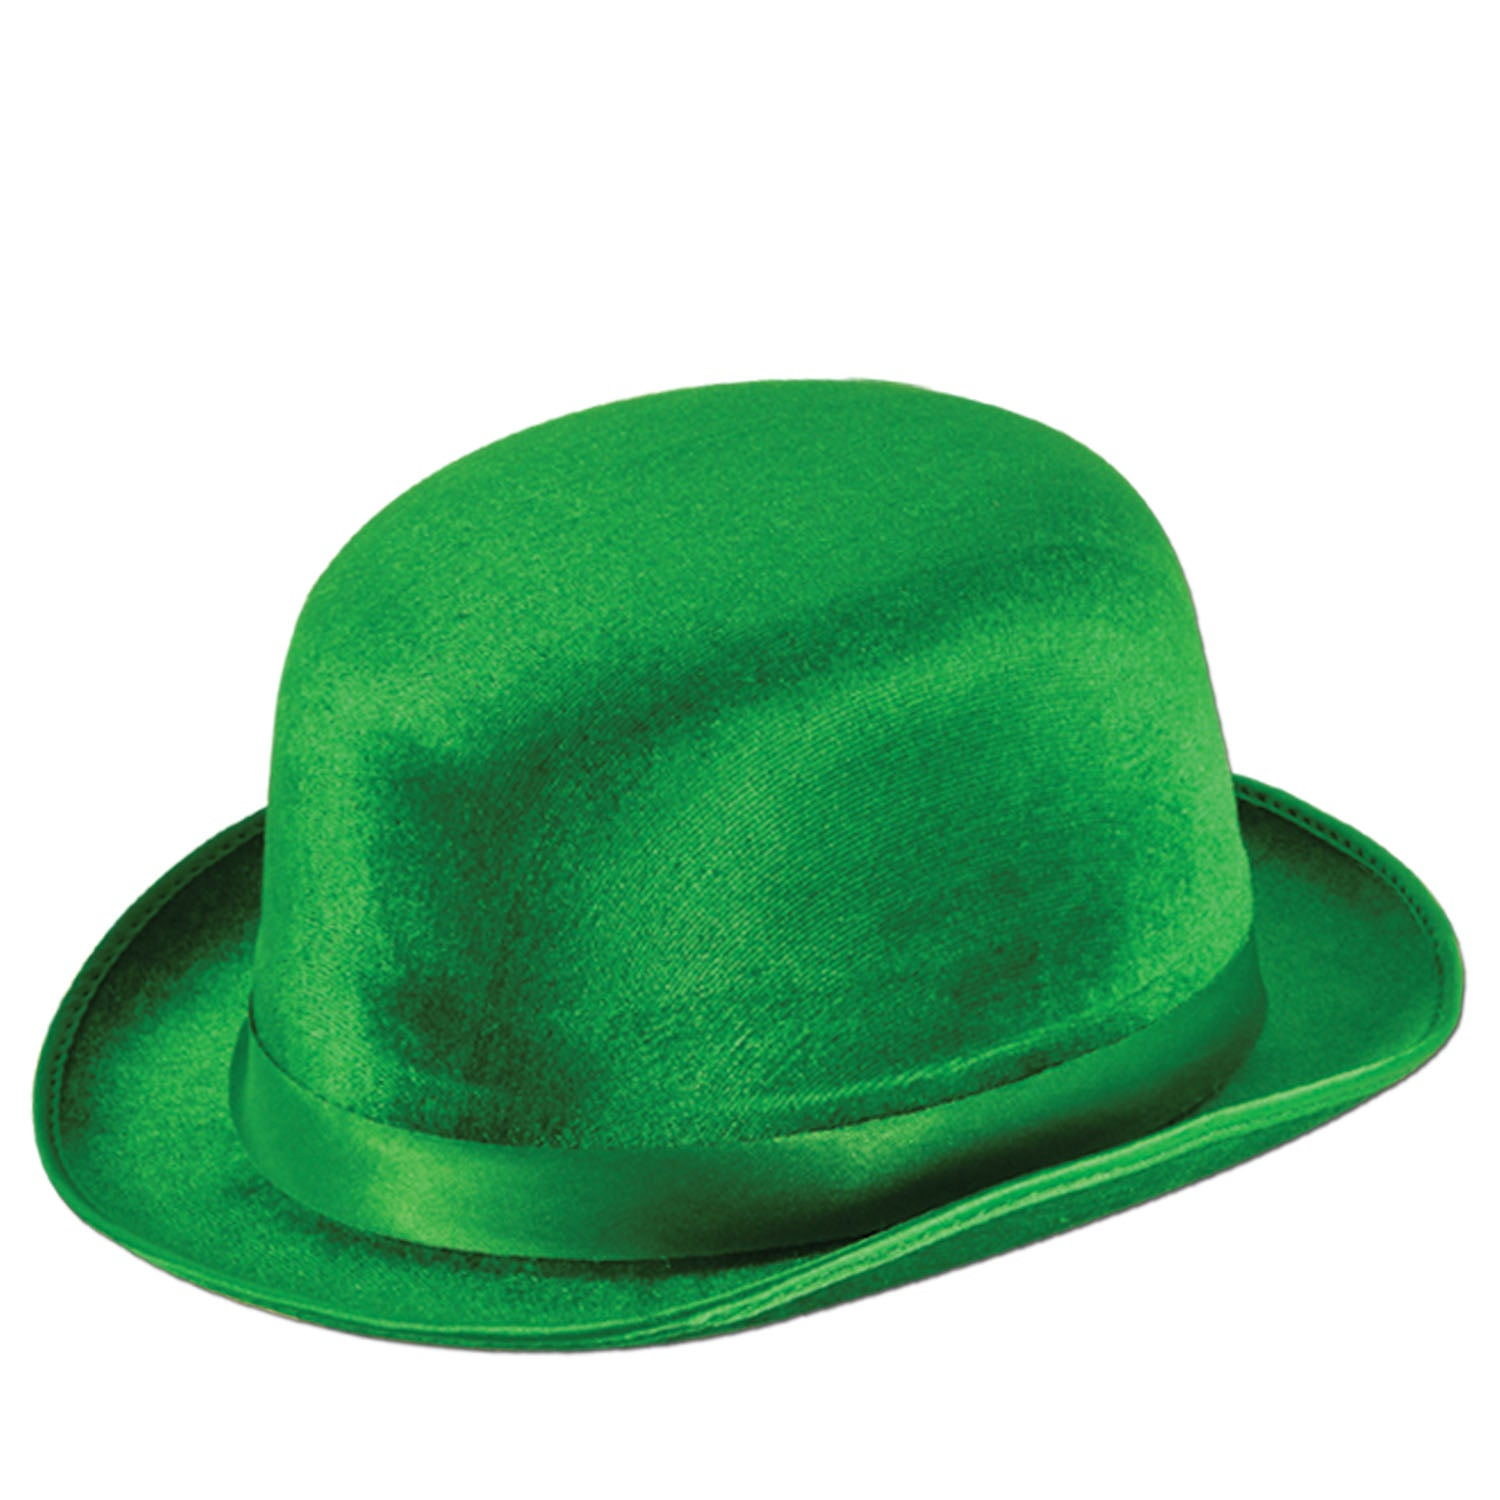 Green Vel-Felt Derby by Beistle - St. Patricks Day Theme Decorations